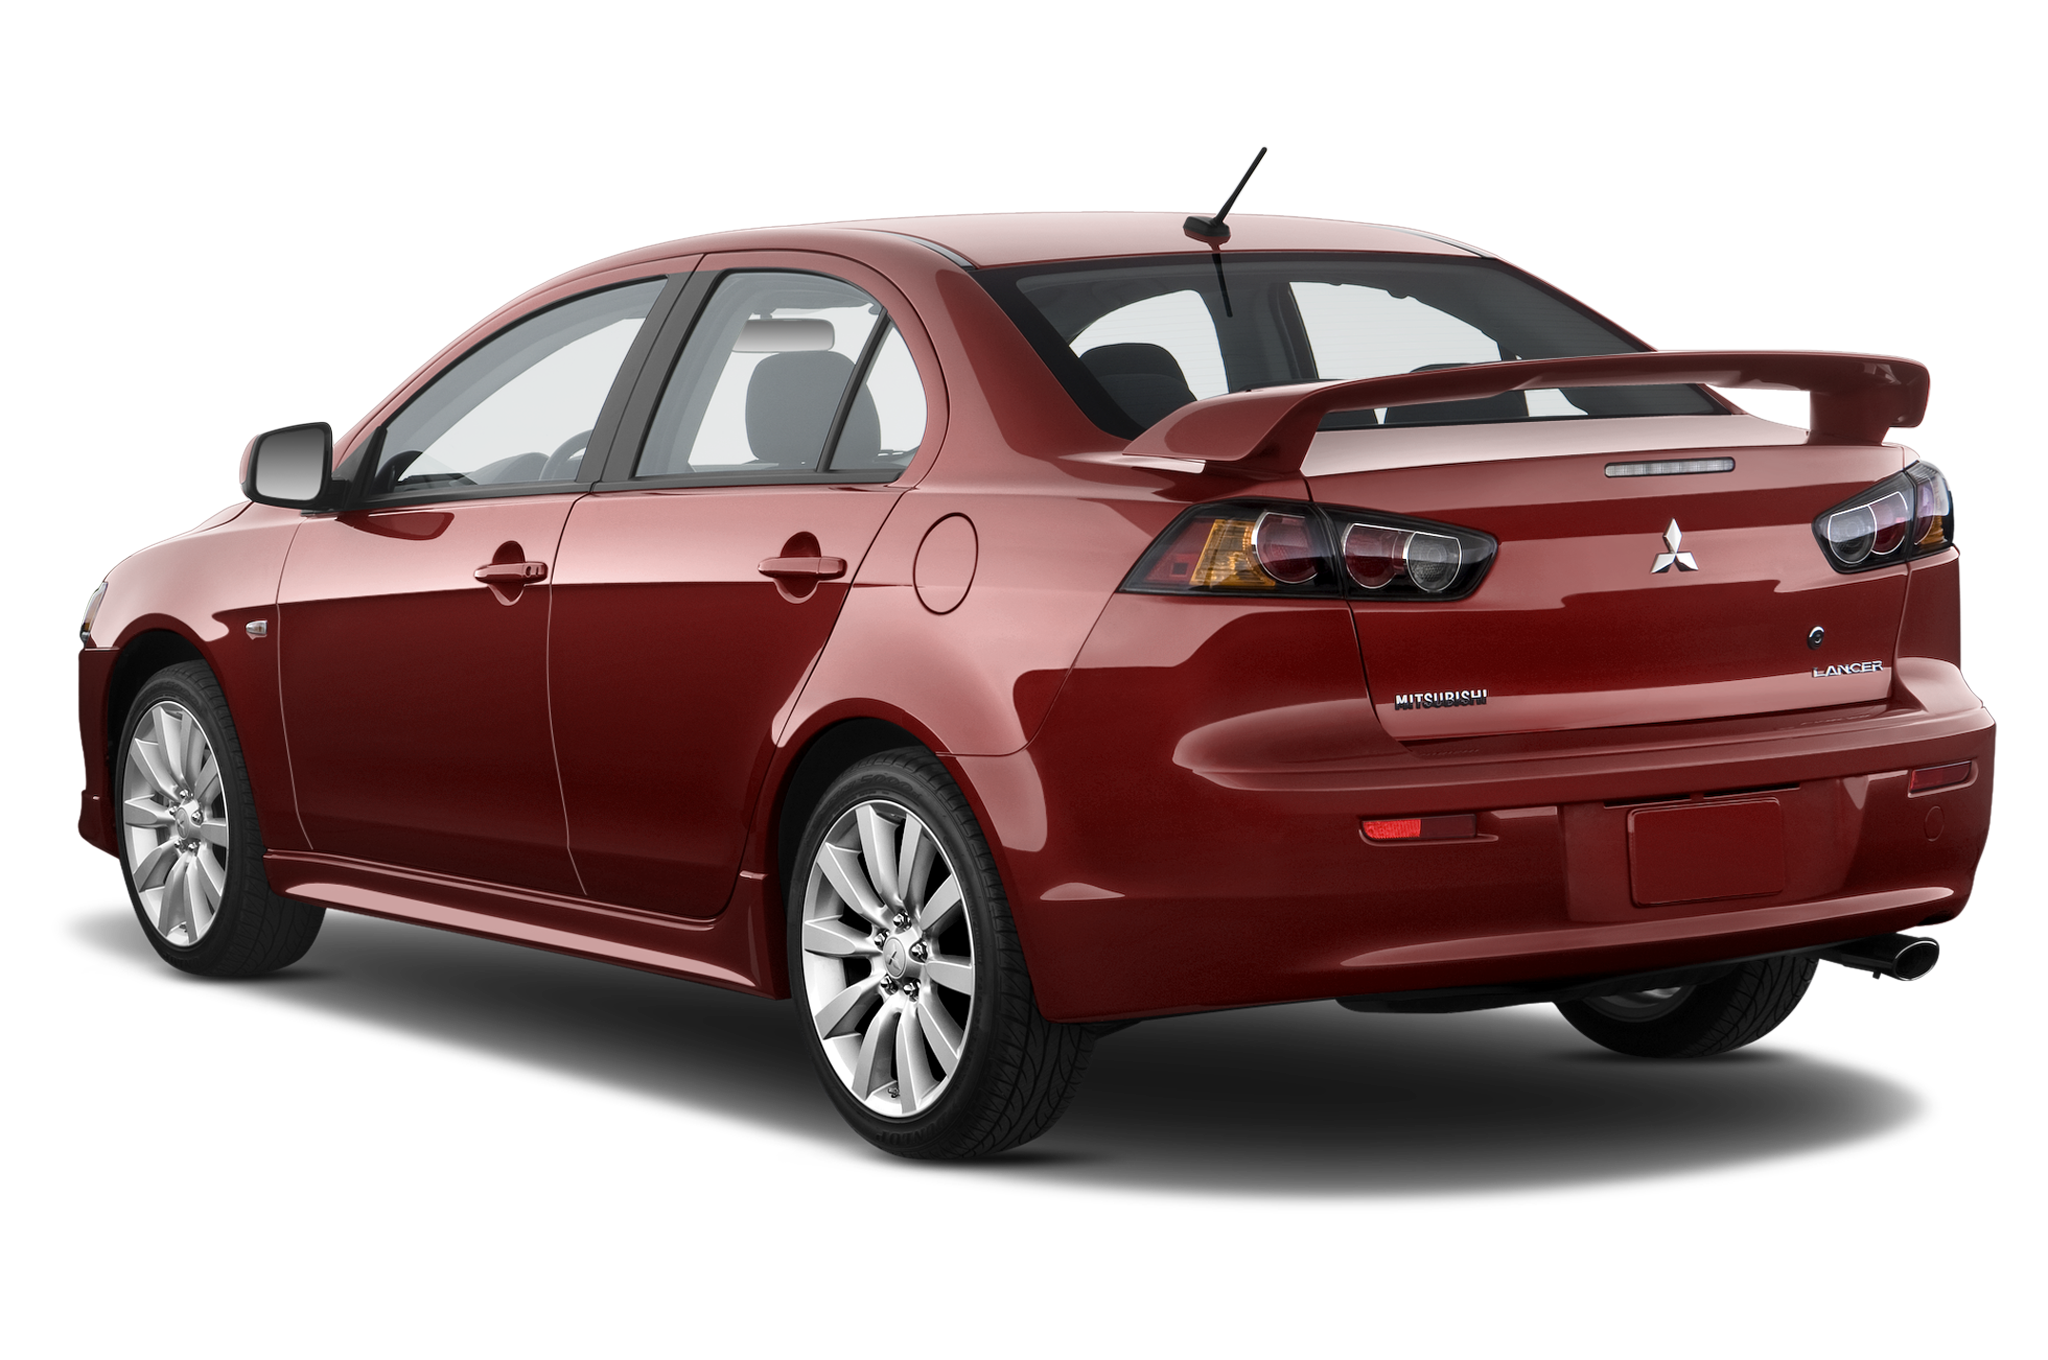 2010 Mitsubishi Lancer Sportback Starts At $19,910